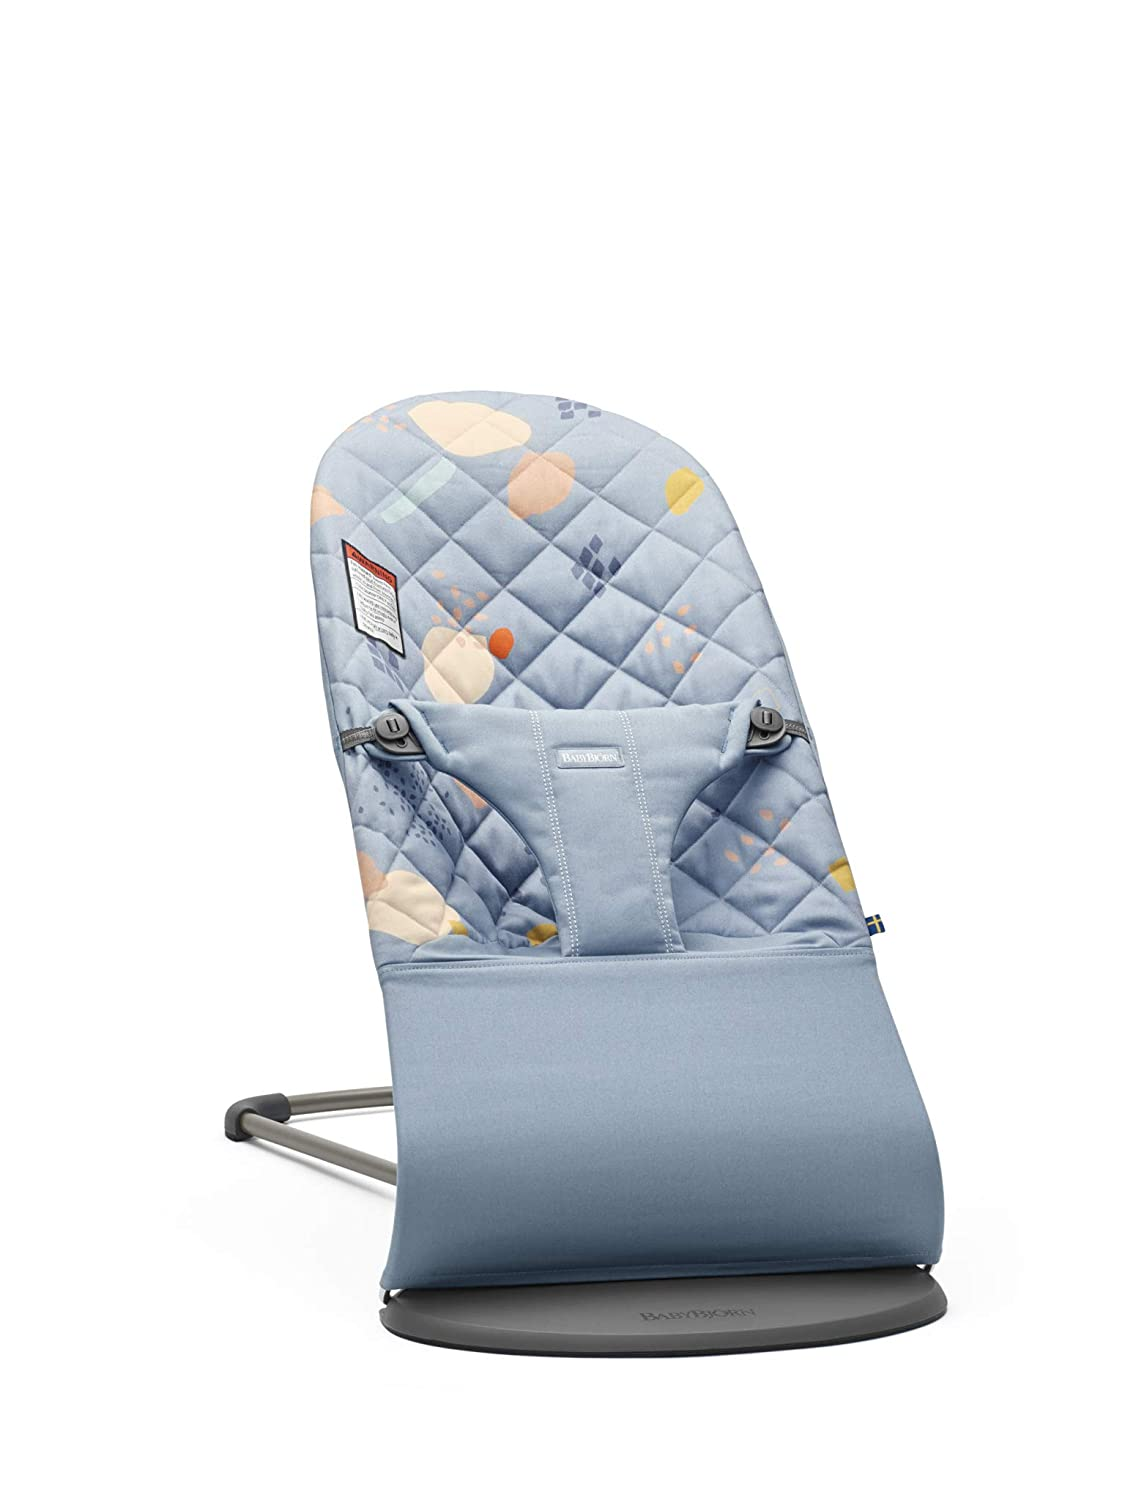 BABYBJORN Bouncer Bliss in Quilted Cotton, Confetti Blue Inc. 006074US